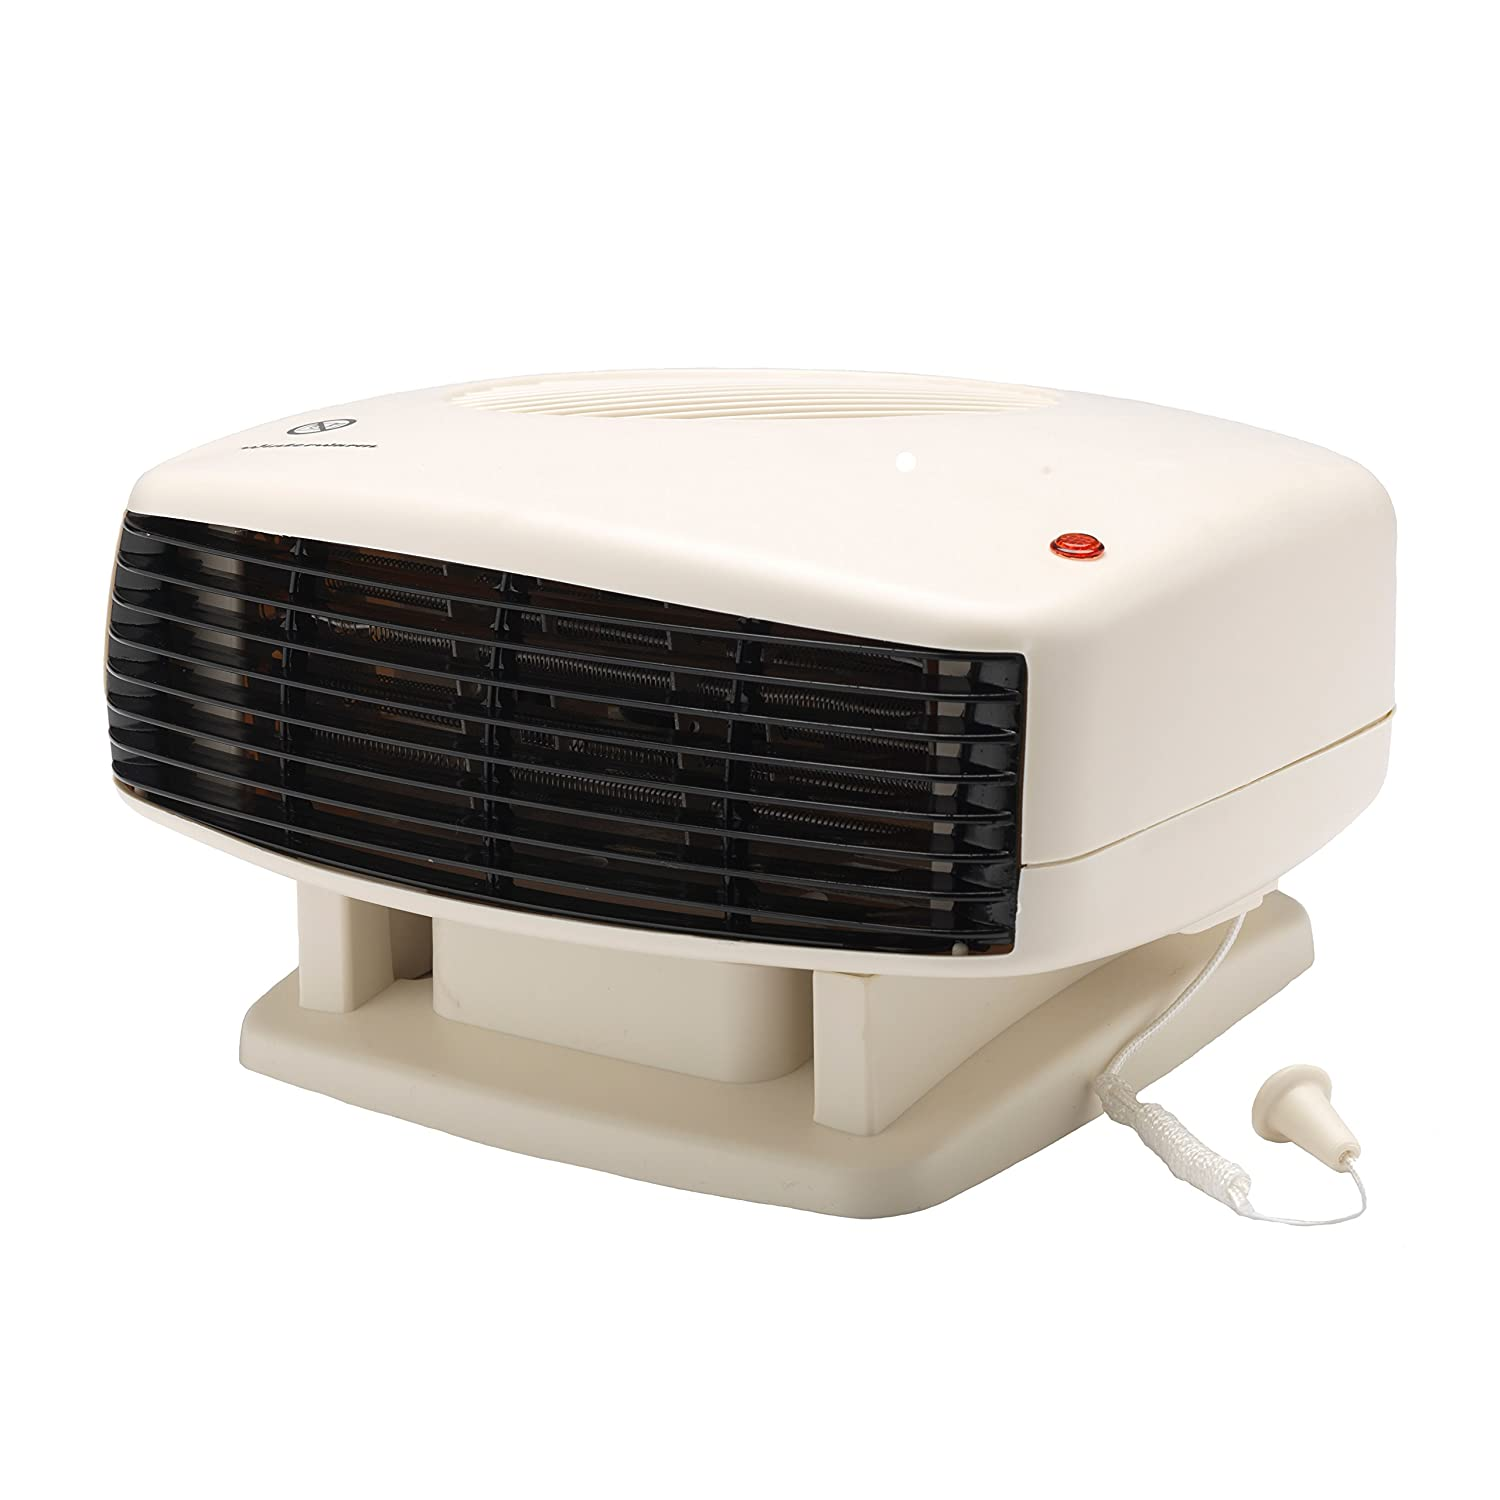 Winterwarm 2 KW Wall Mounted Downflow Bathroom Fan Heater Amazon